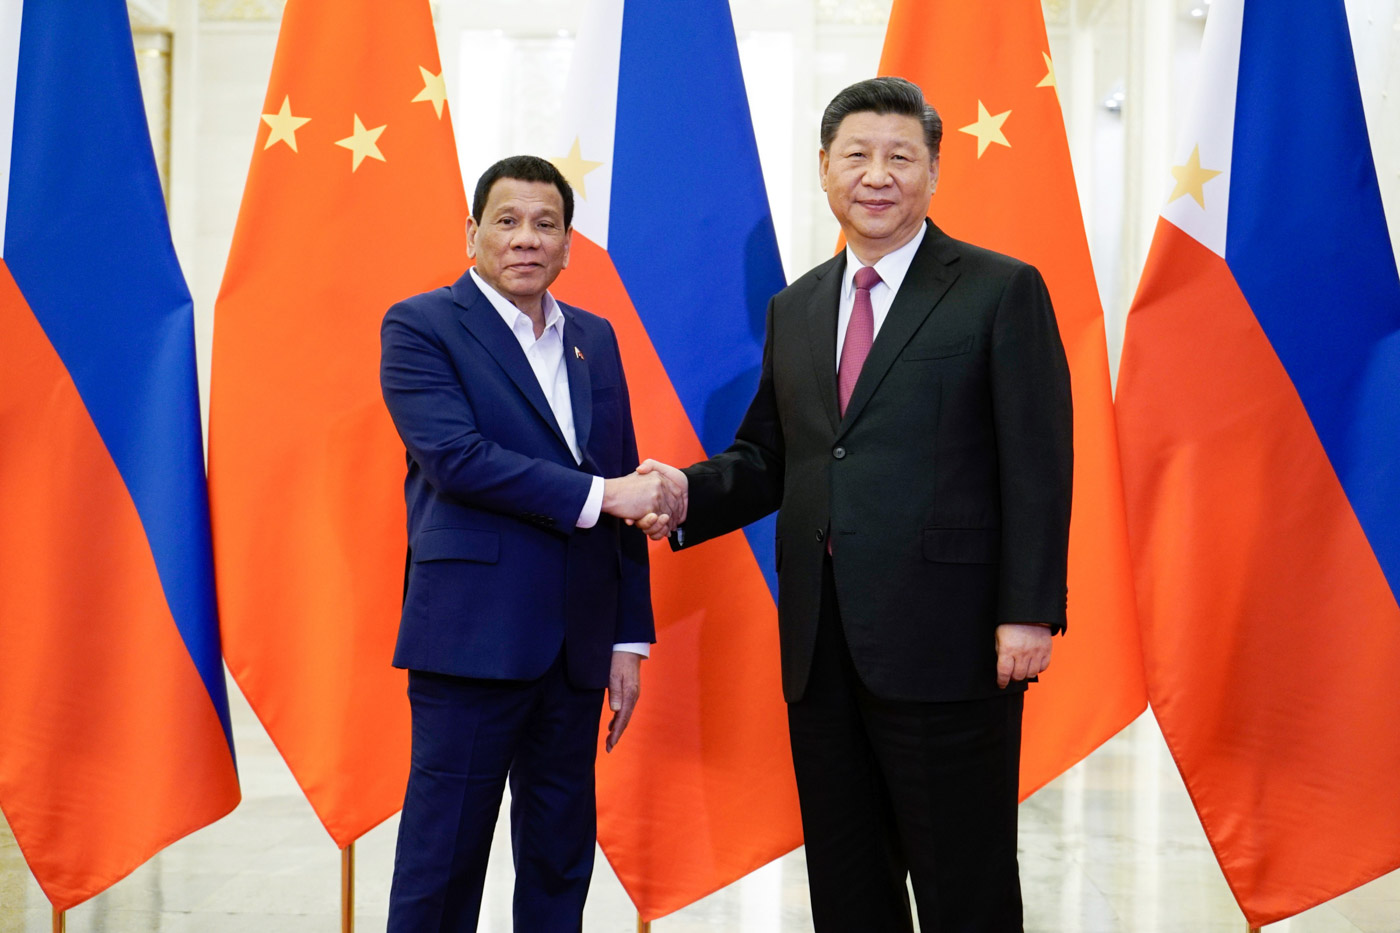 STRONG TIES. Philippine President Rodrigo Duterte and Chinese President Xi Jinping pose for a photo op before their bilateral meeting at the Great Hall of the People in Beijing on April 25, 2019. Malacau00f1ang photo